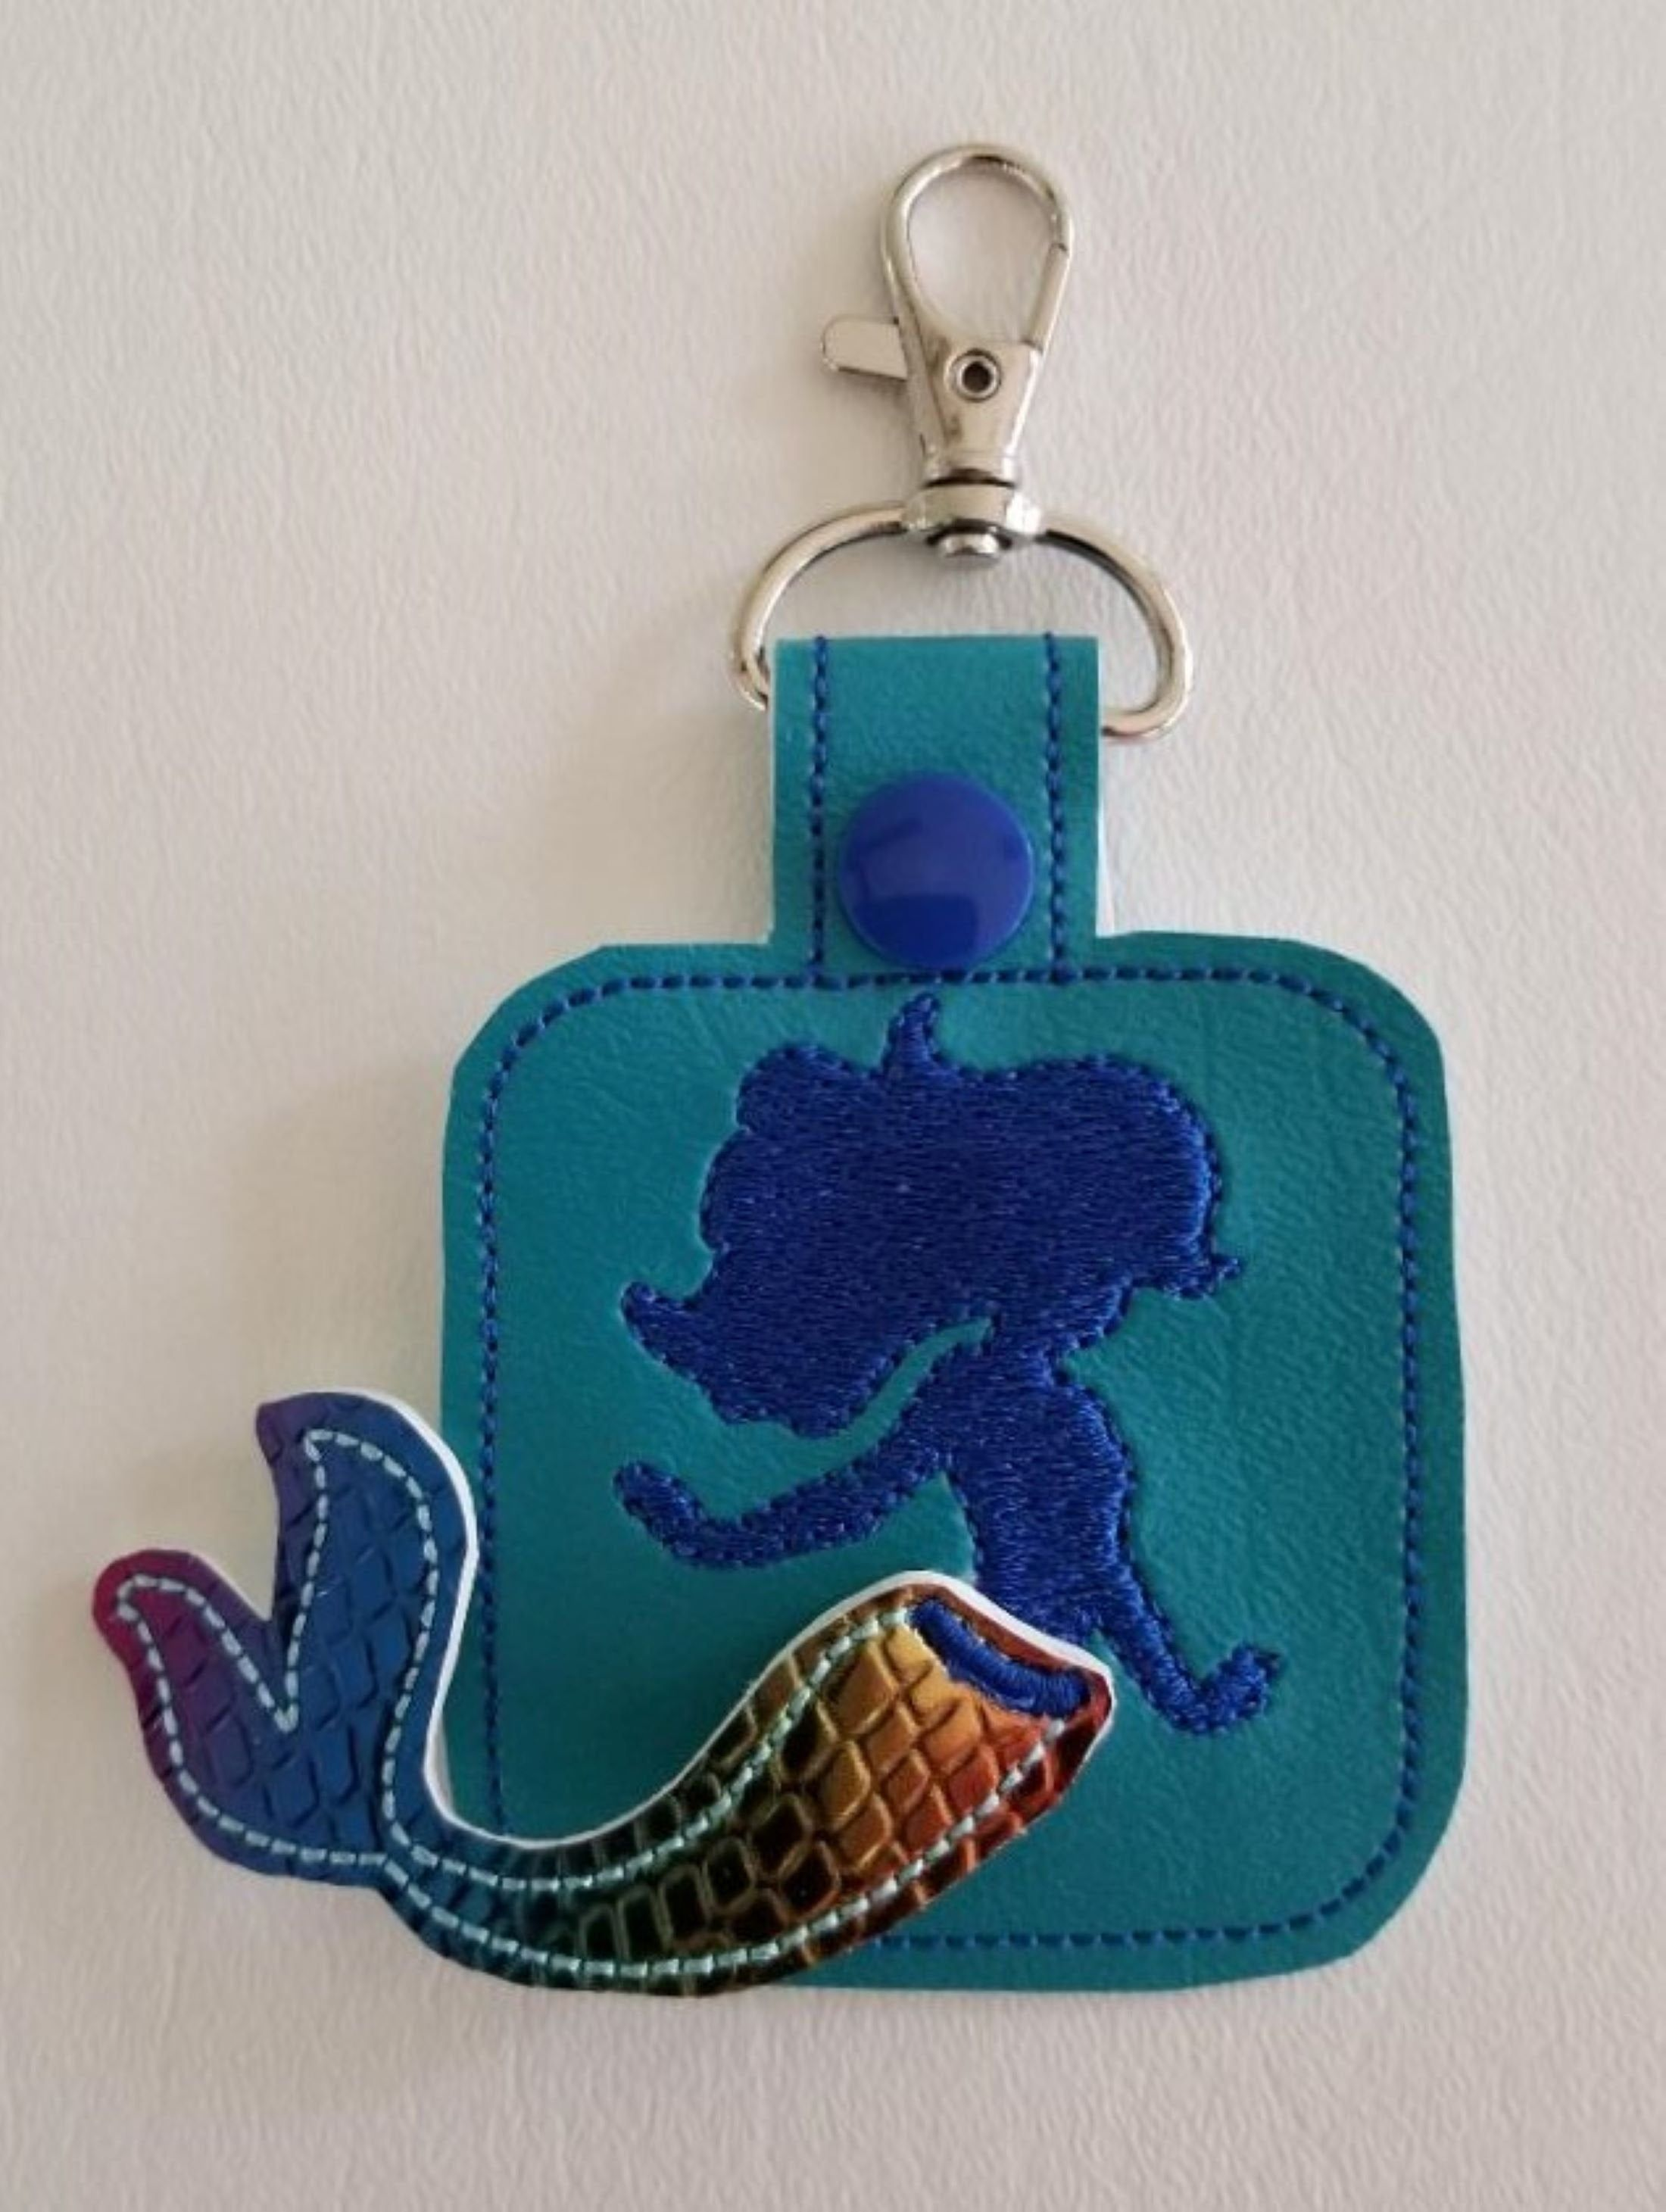 Mermaid Tail 3d Keychain Backpack Tag In 2019 Backpack Tags